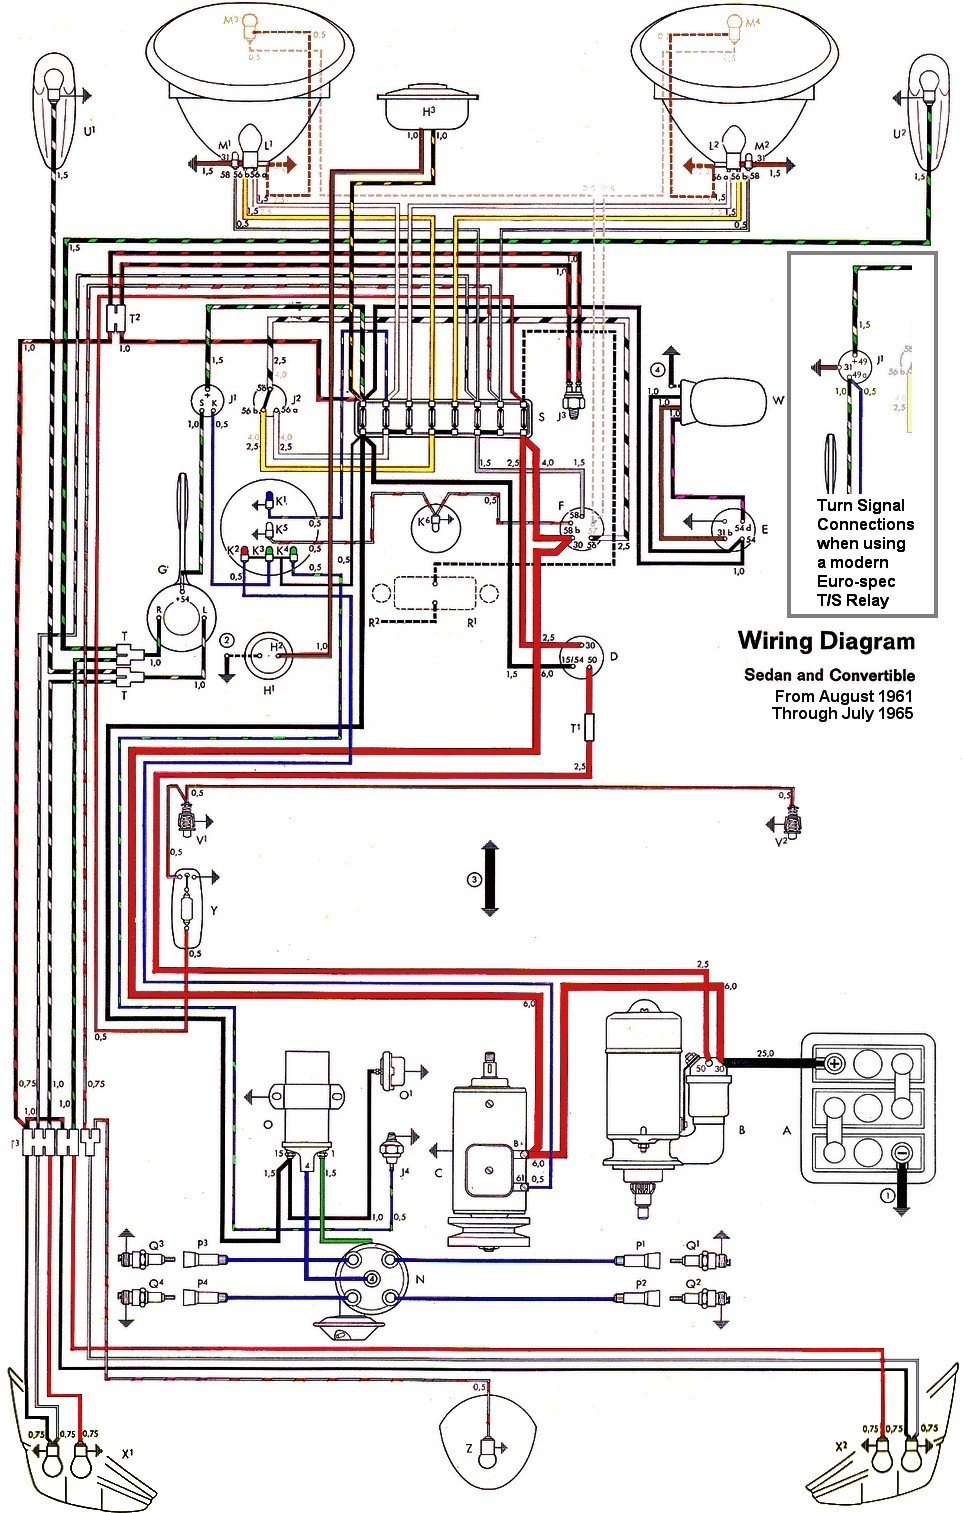 bug_62 65withinset wiring diagram vw beetle sedan and convertible 1961 1965 vw beetle wiring diagram to fix a/c fan at n-0.co